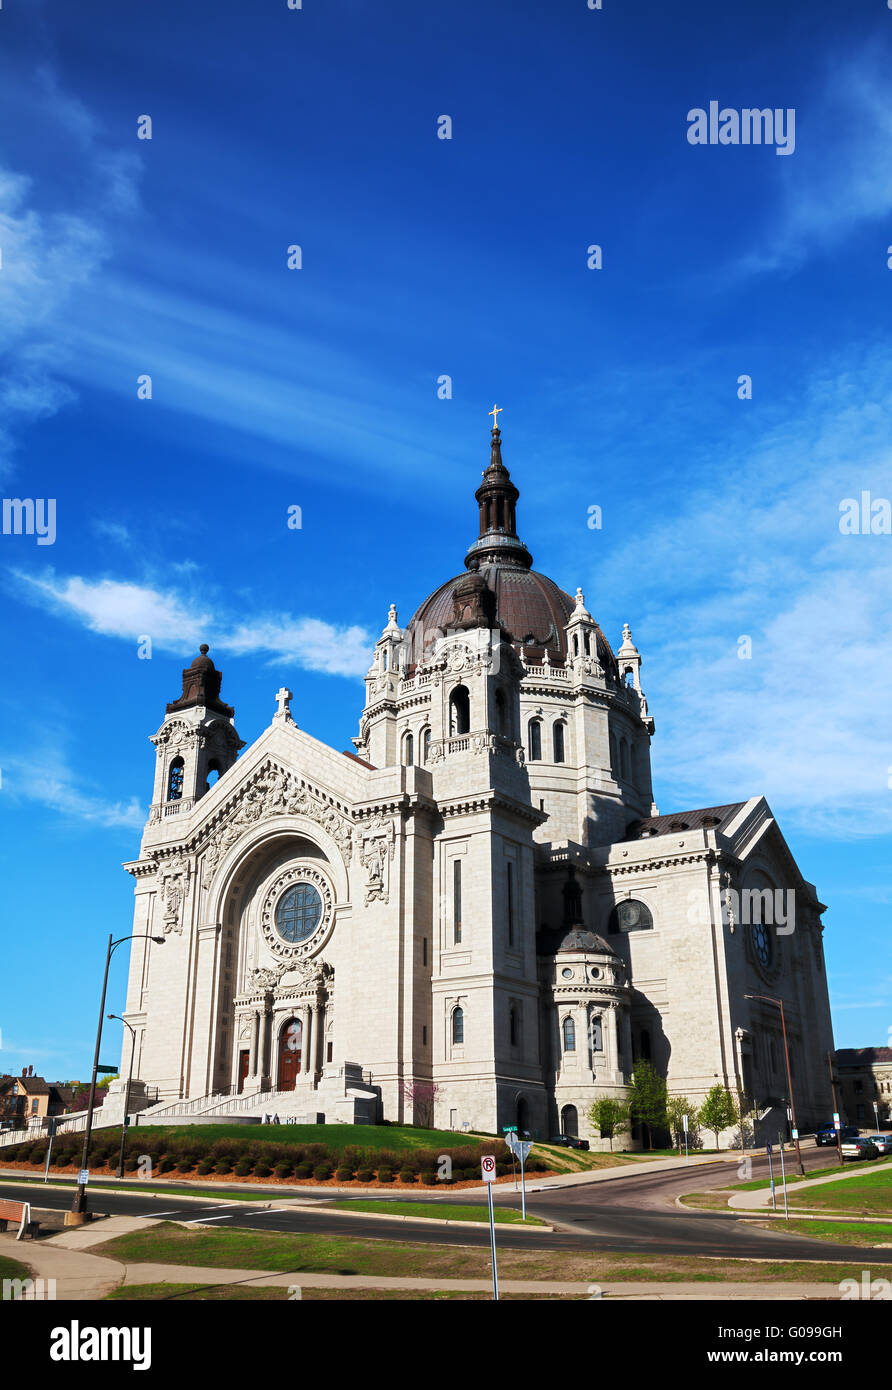 Cathedral of St. Paul, Minnesota in the morning - Stock Image